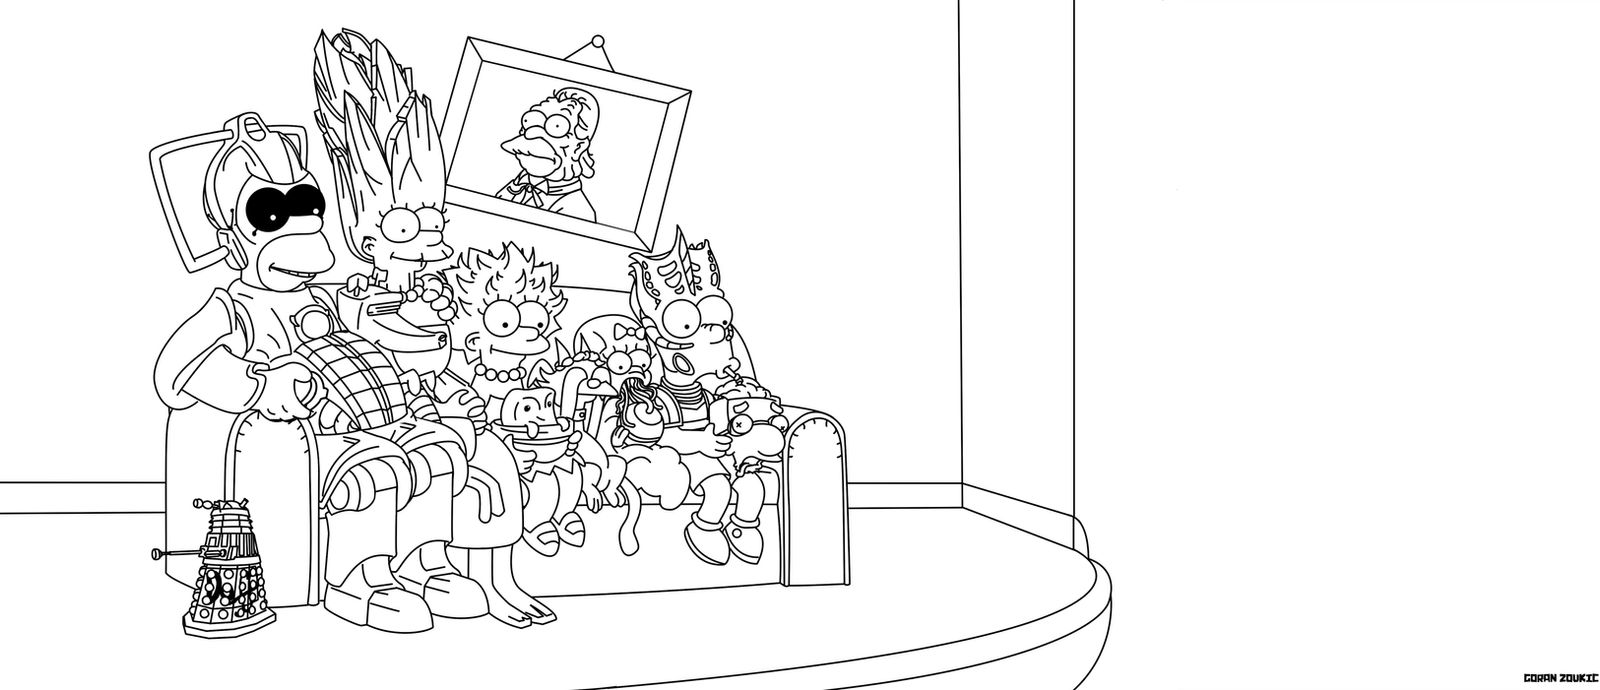 Doctor Who - Simpsons Couch Gag (Coloring Book Ver by belgoran